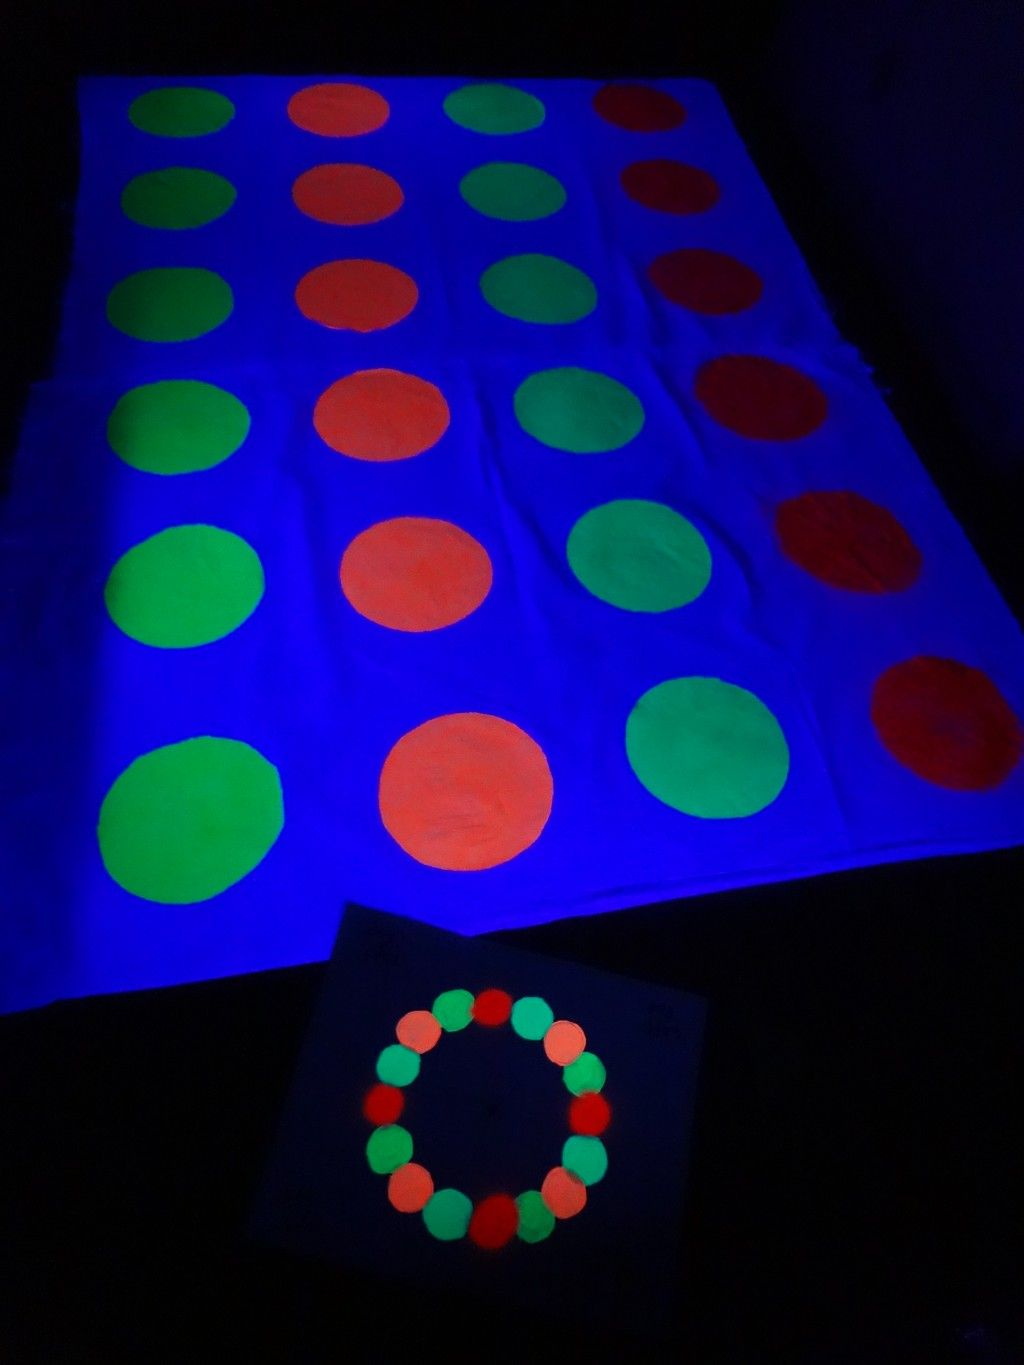 Make Your Own Glow-in-the-Dark Twister Game - Holidappy ...